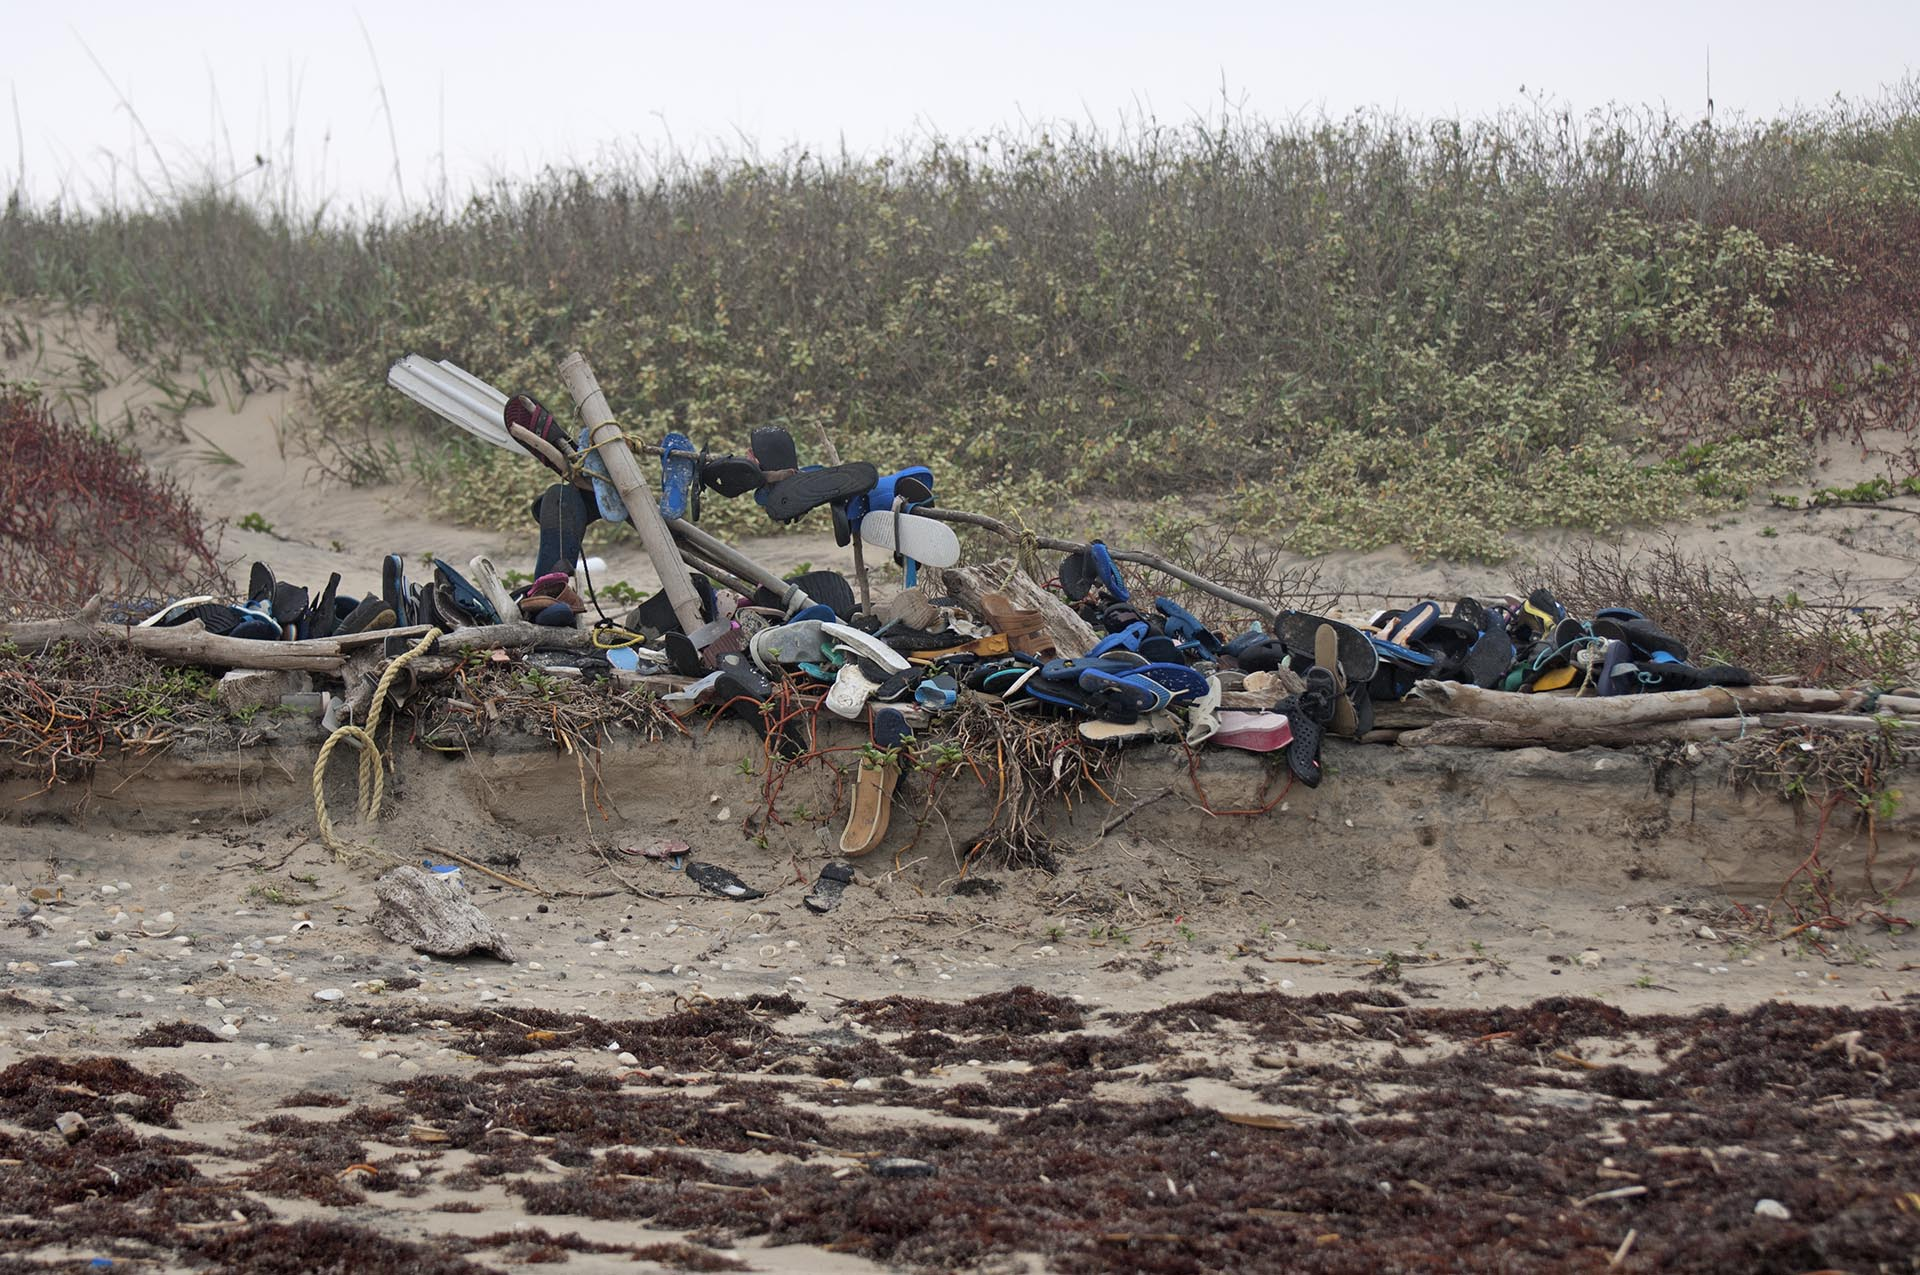 SPi beach sculpture flip flop tree destroyed by erosion